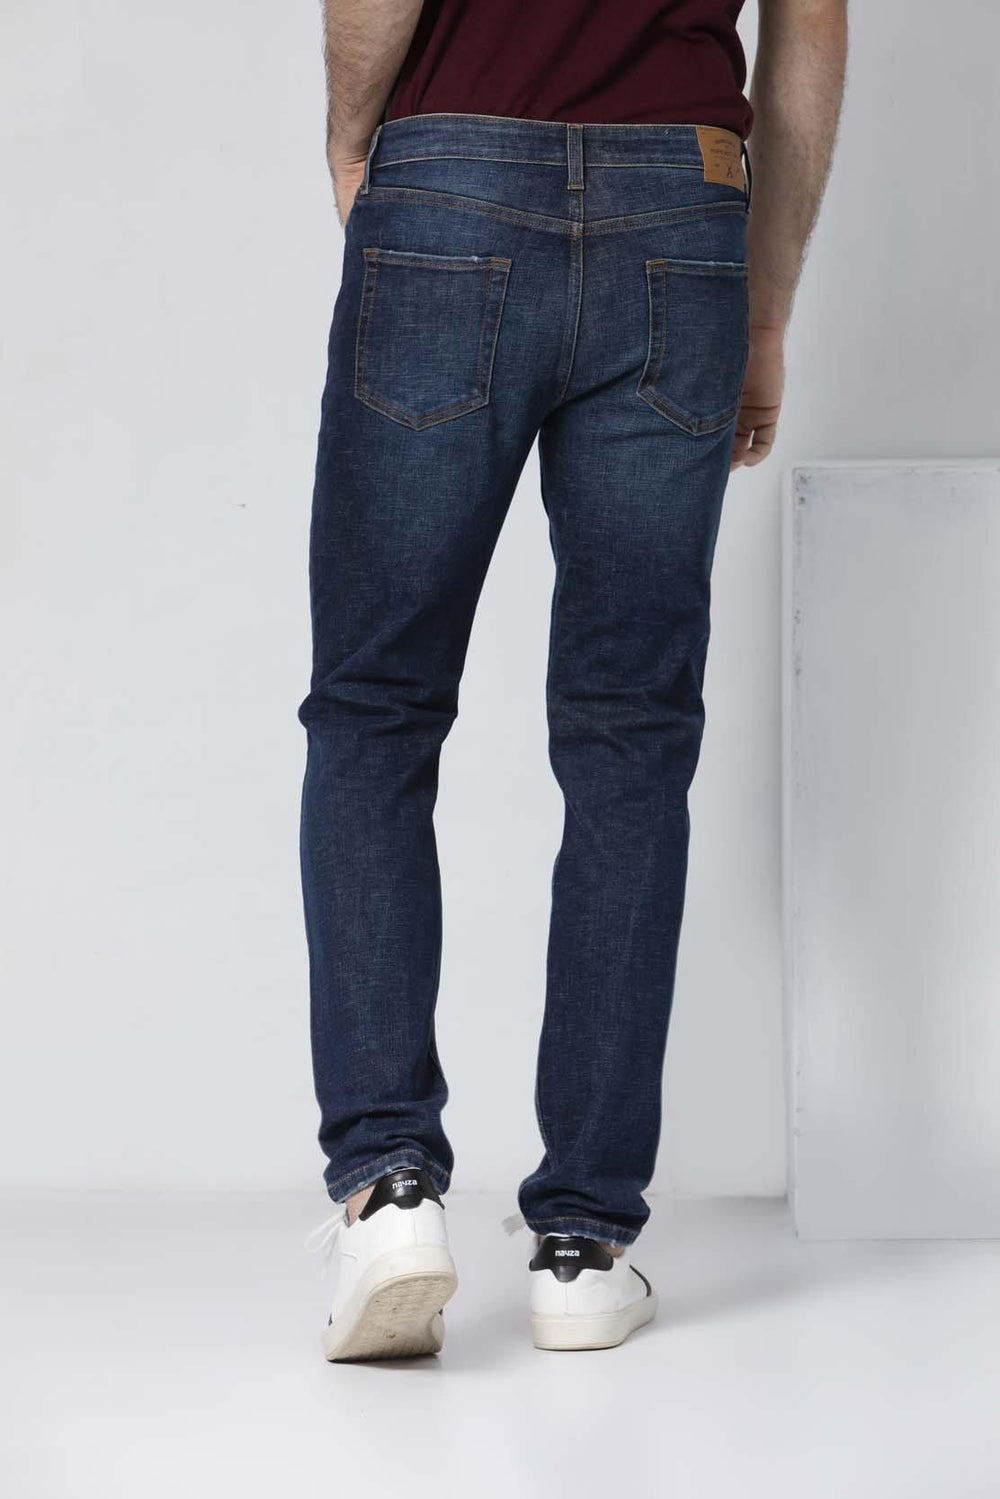 Black Denim HMDBS20013